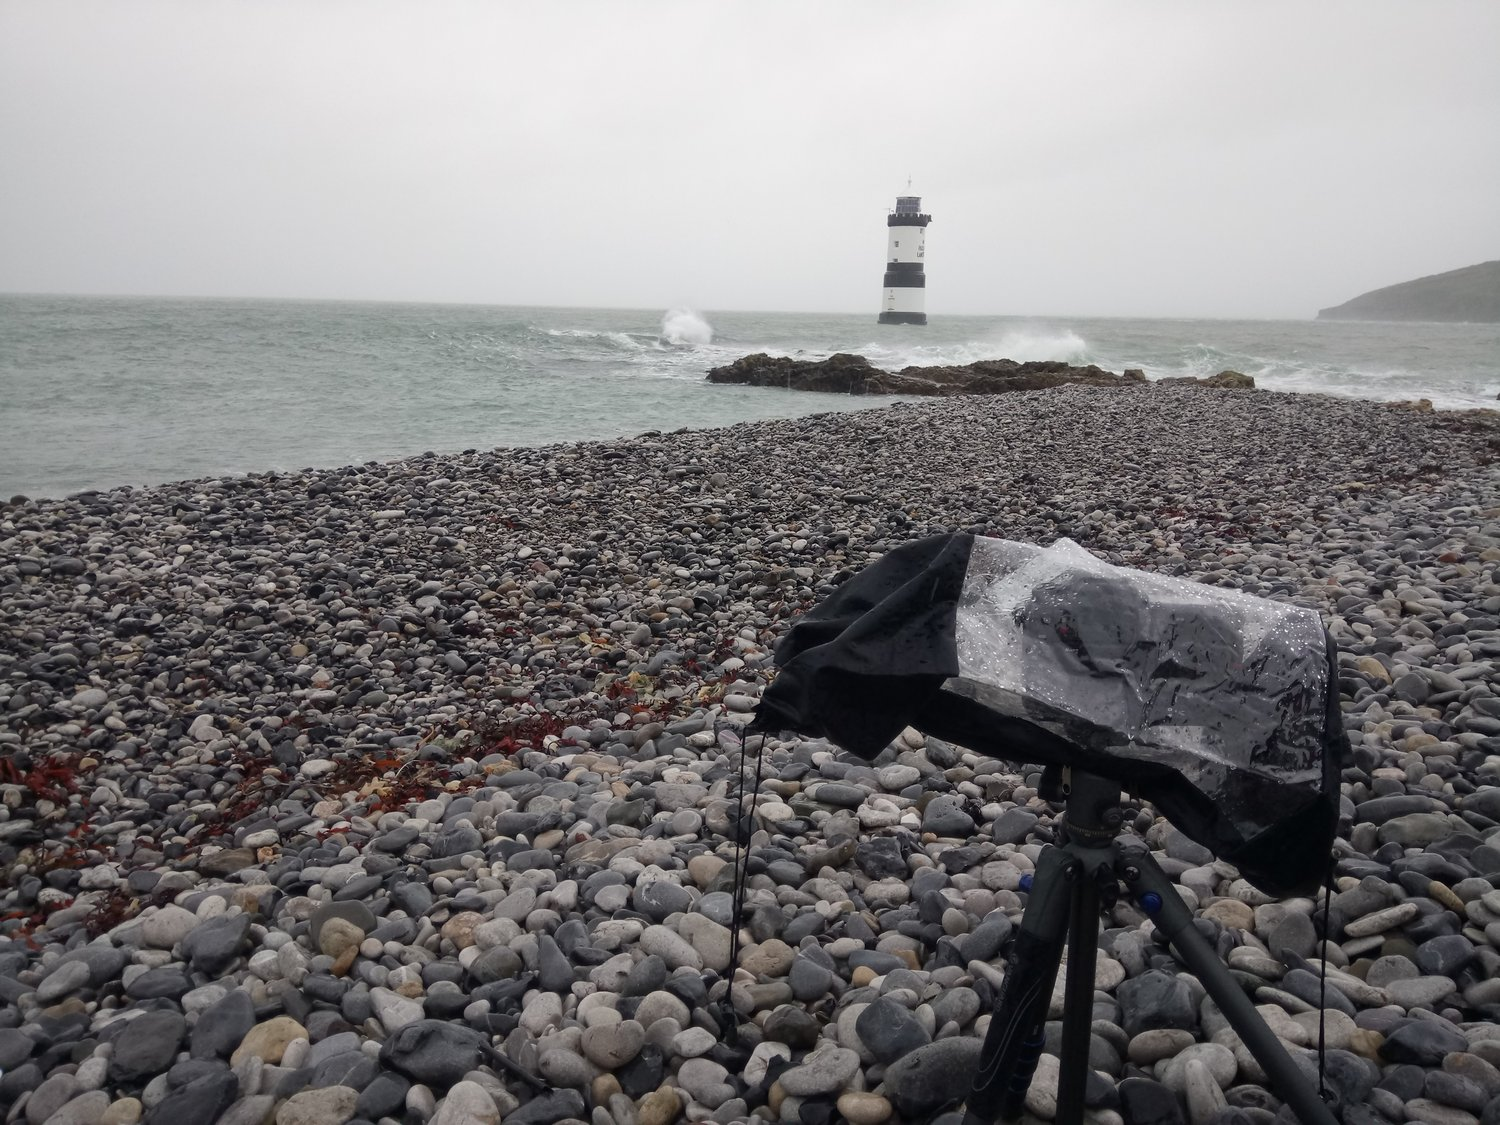 Vanguard Veo 2 235AB - I take the Vanguard Photo Veo 2 235ab travel tripod with me to North Wales for a week during SnowdoniaTogFest2017 and put the small but mighty travel tripod to breaking point with heavy rain and 60mph plus winds as Storm Brian hits Snowdonia.